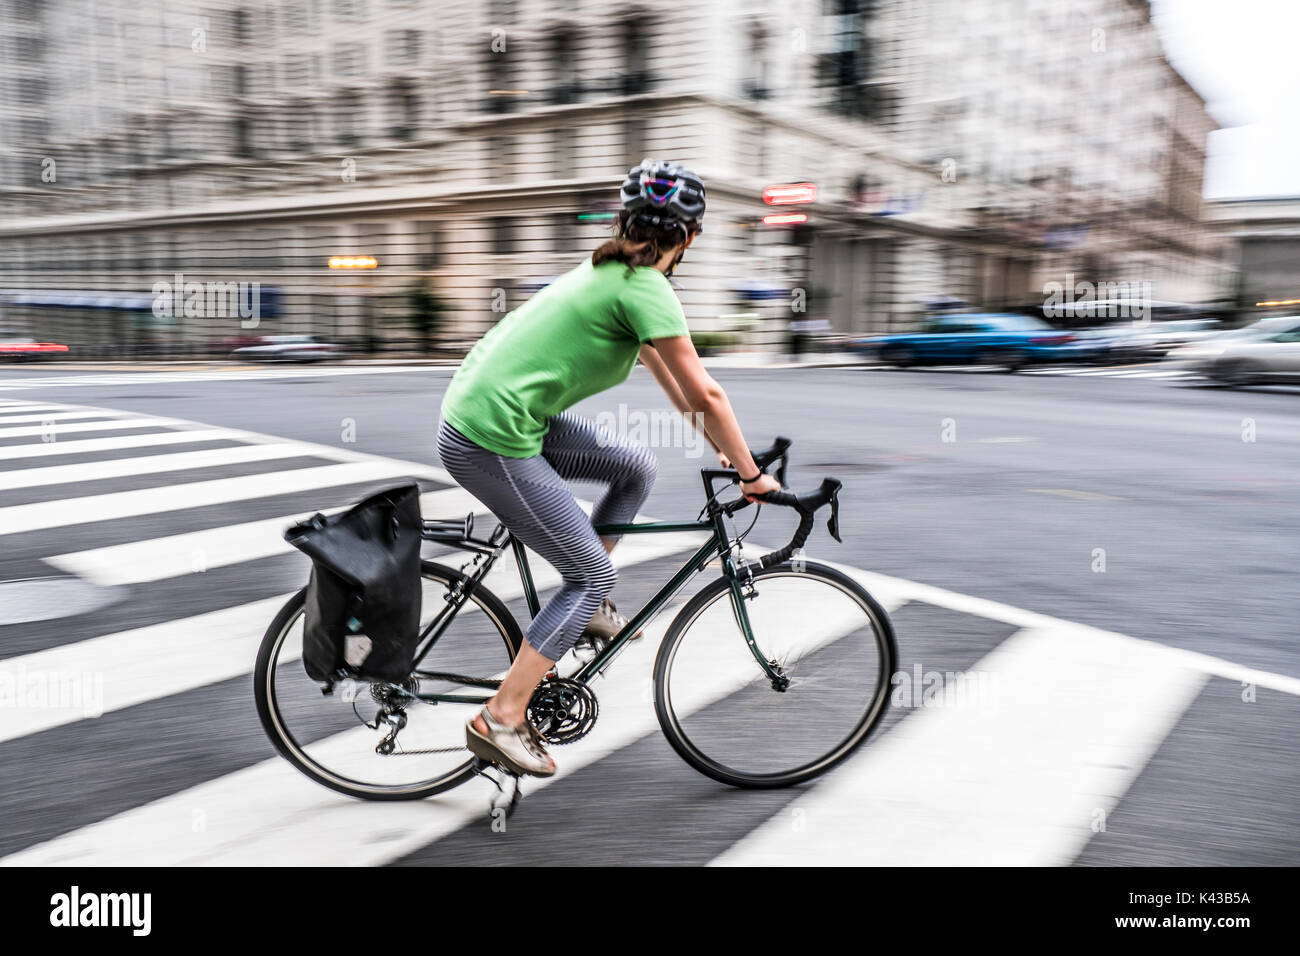 Abstract blur a cyclist riding in Washington DC city road - Stock Image